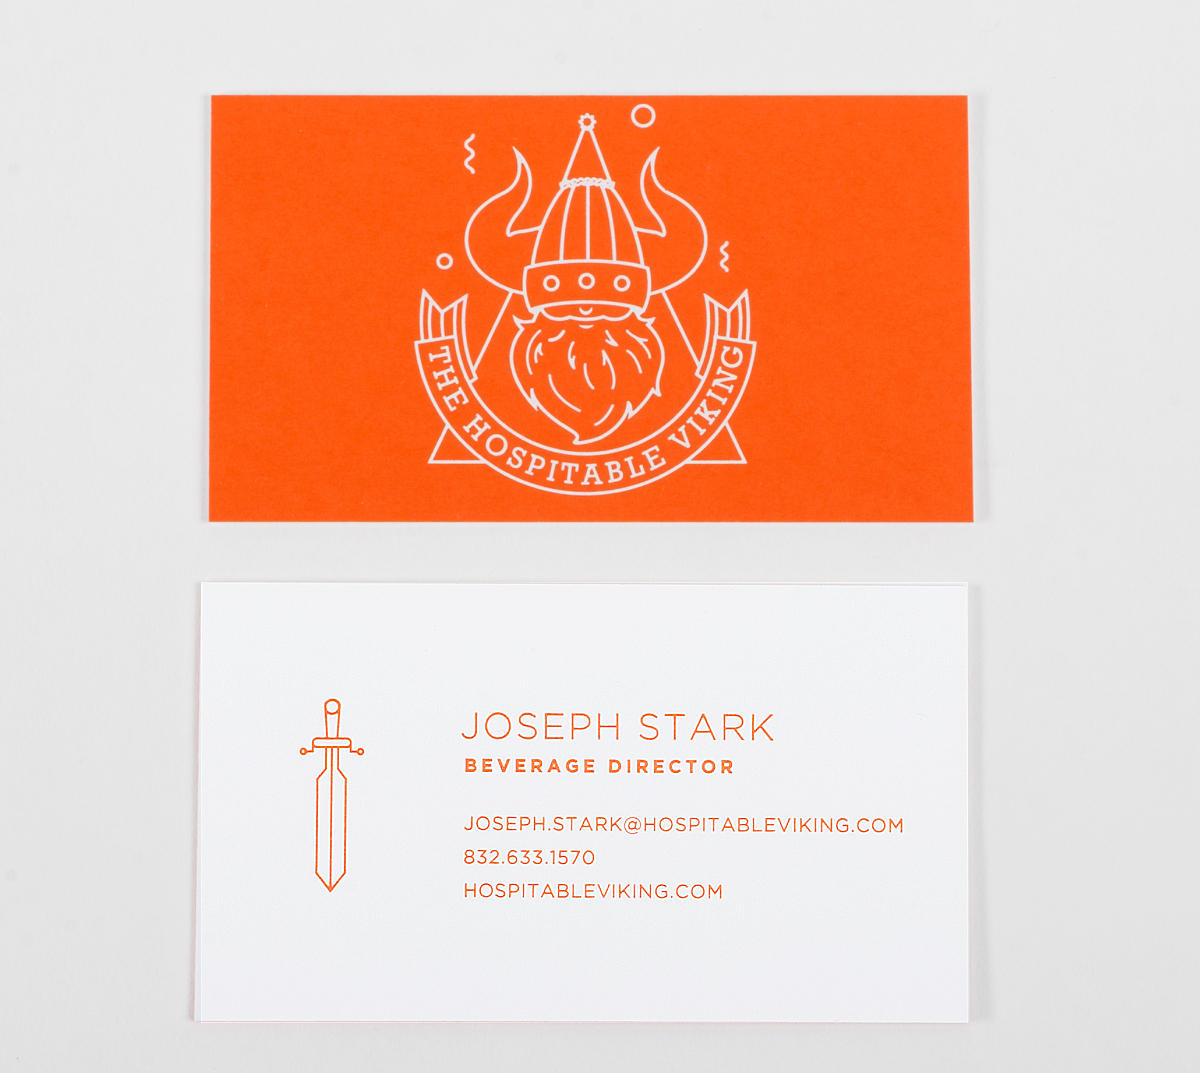 Hospitable Viking Letterpress foil stamping business cards | Workhorse Printmakers | Houston, Austin, Dallas, San Antonio, Texas